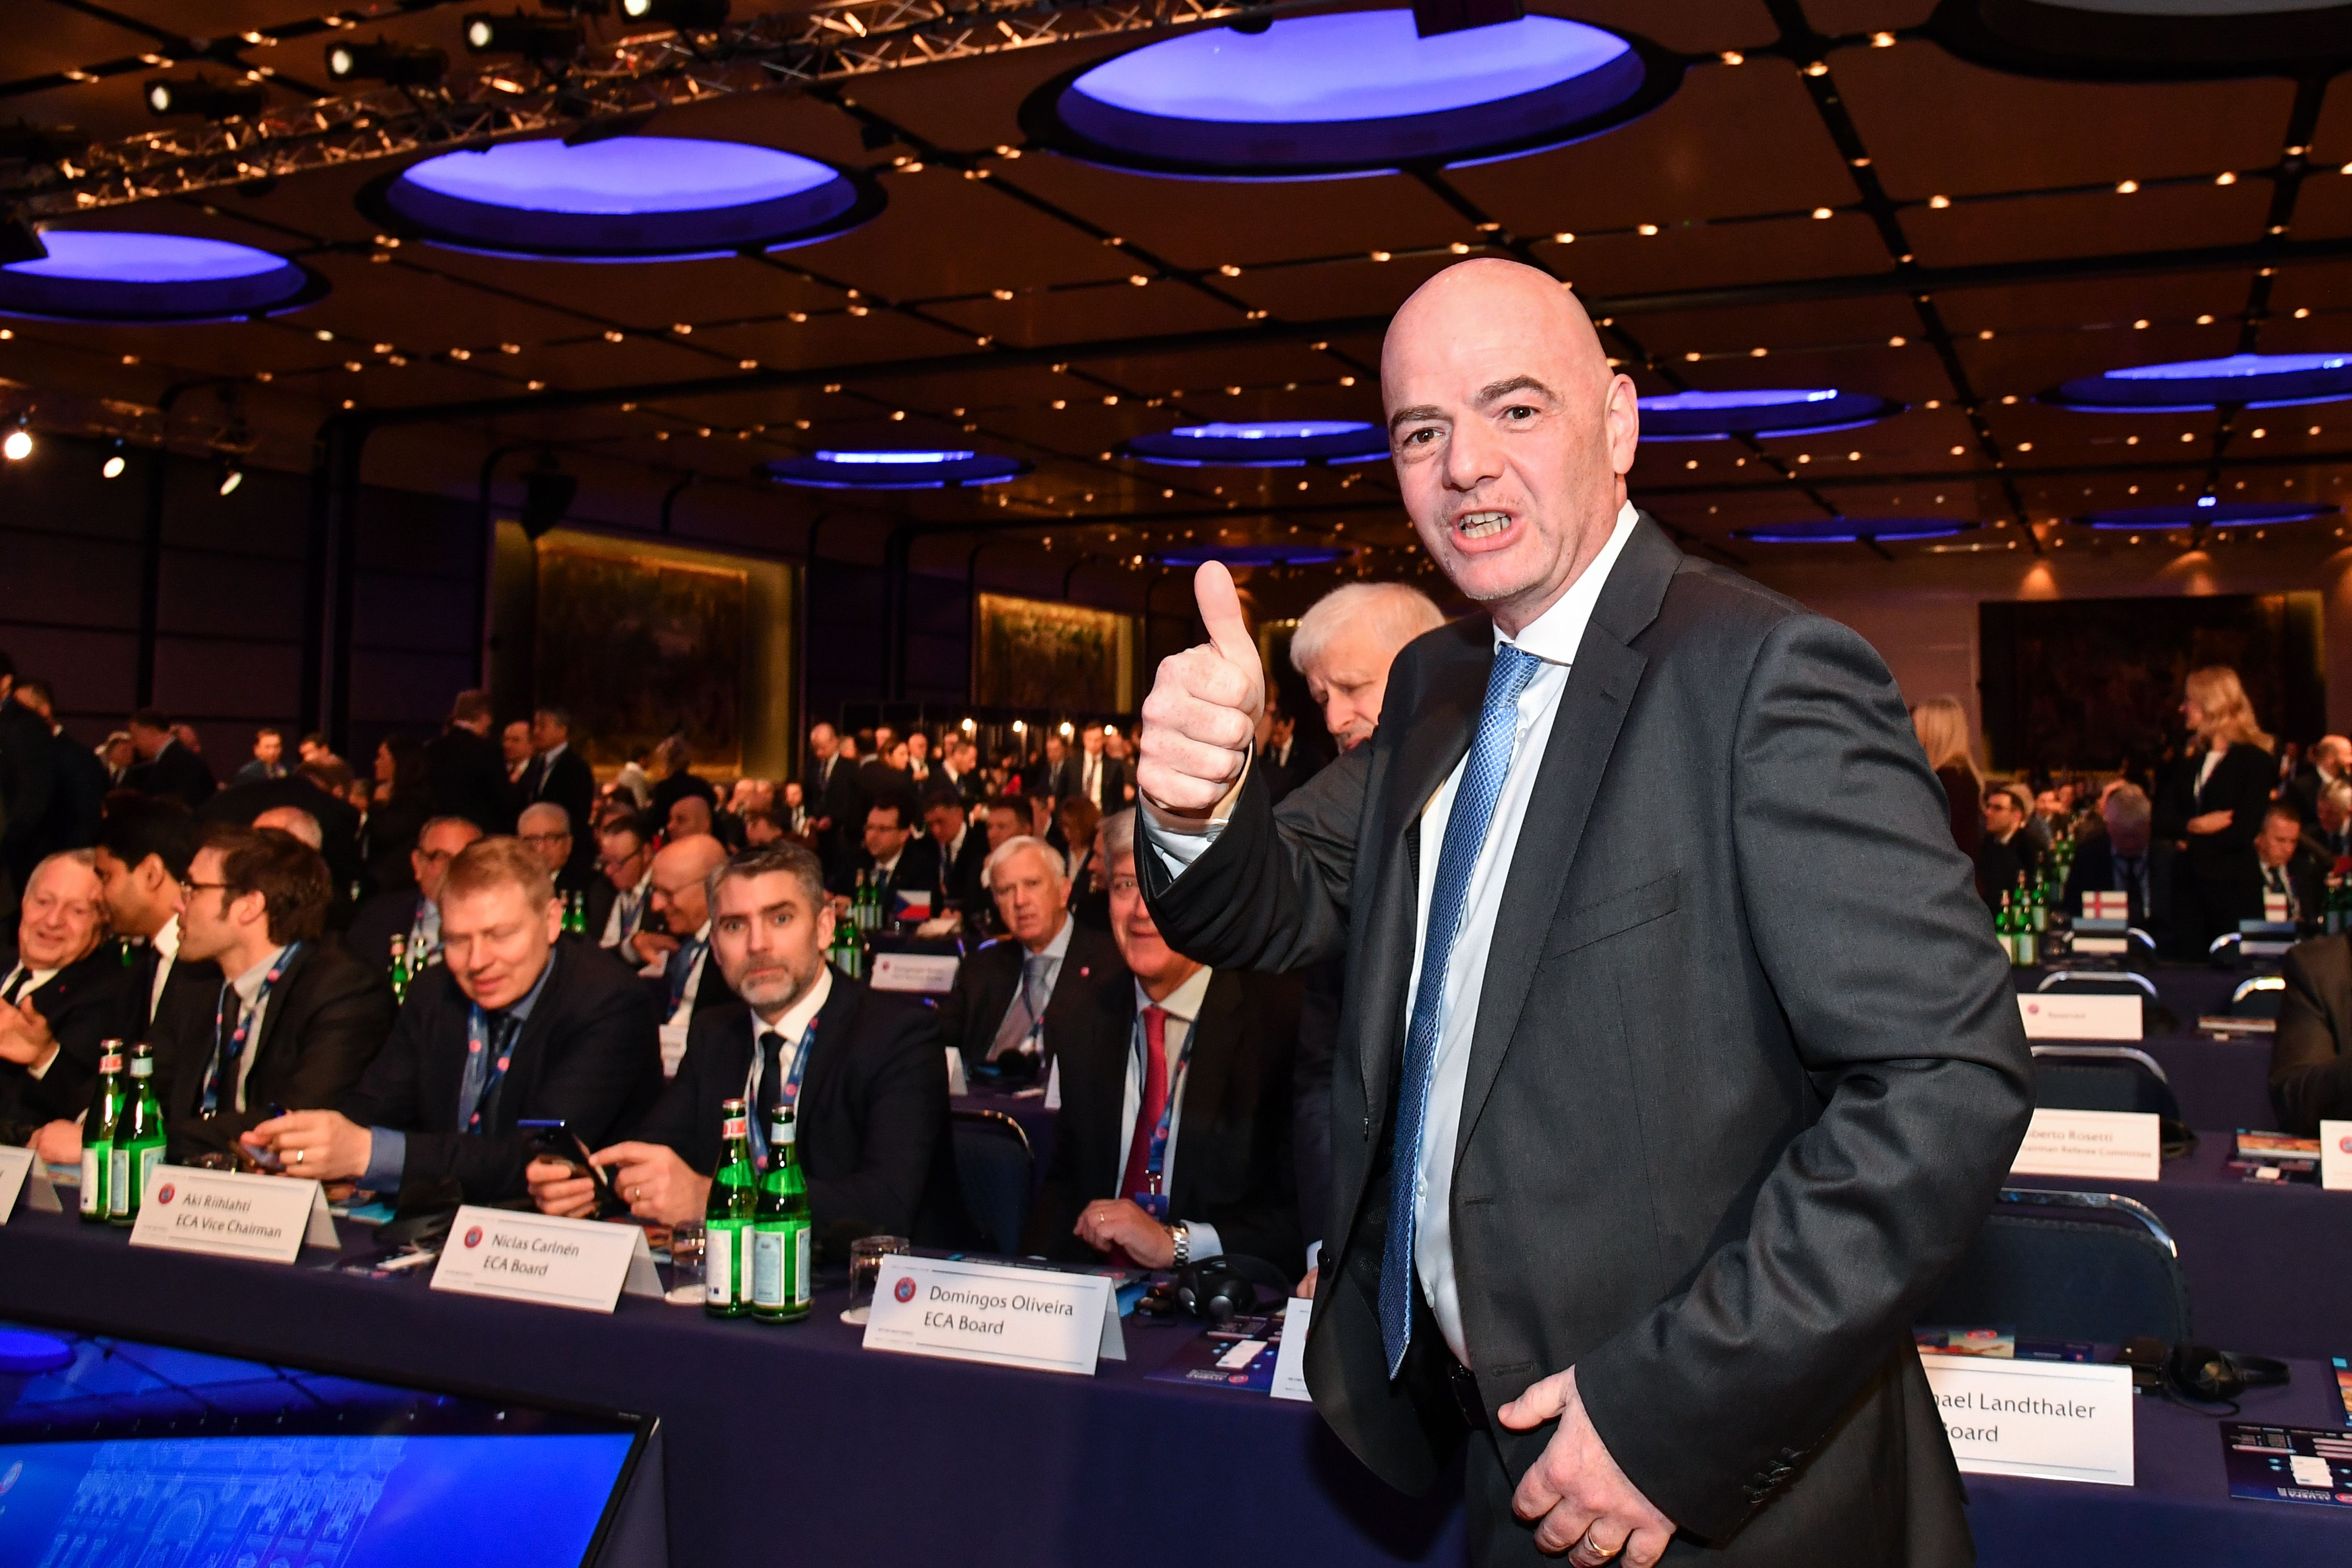 FIFA president Gianni Infantino gestures during the 43rd Ordinary UEFA Congress on February 7, 2019 in Rome. (Photo by Andreas SOLARO / AFP)